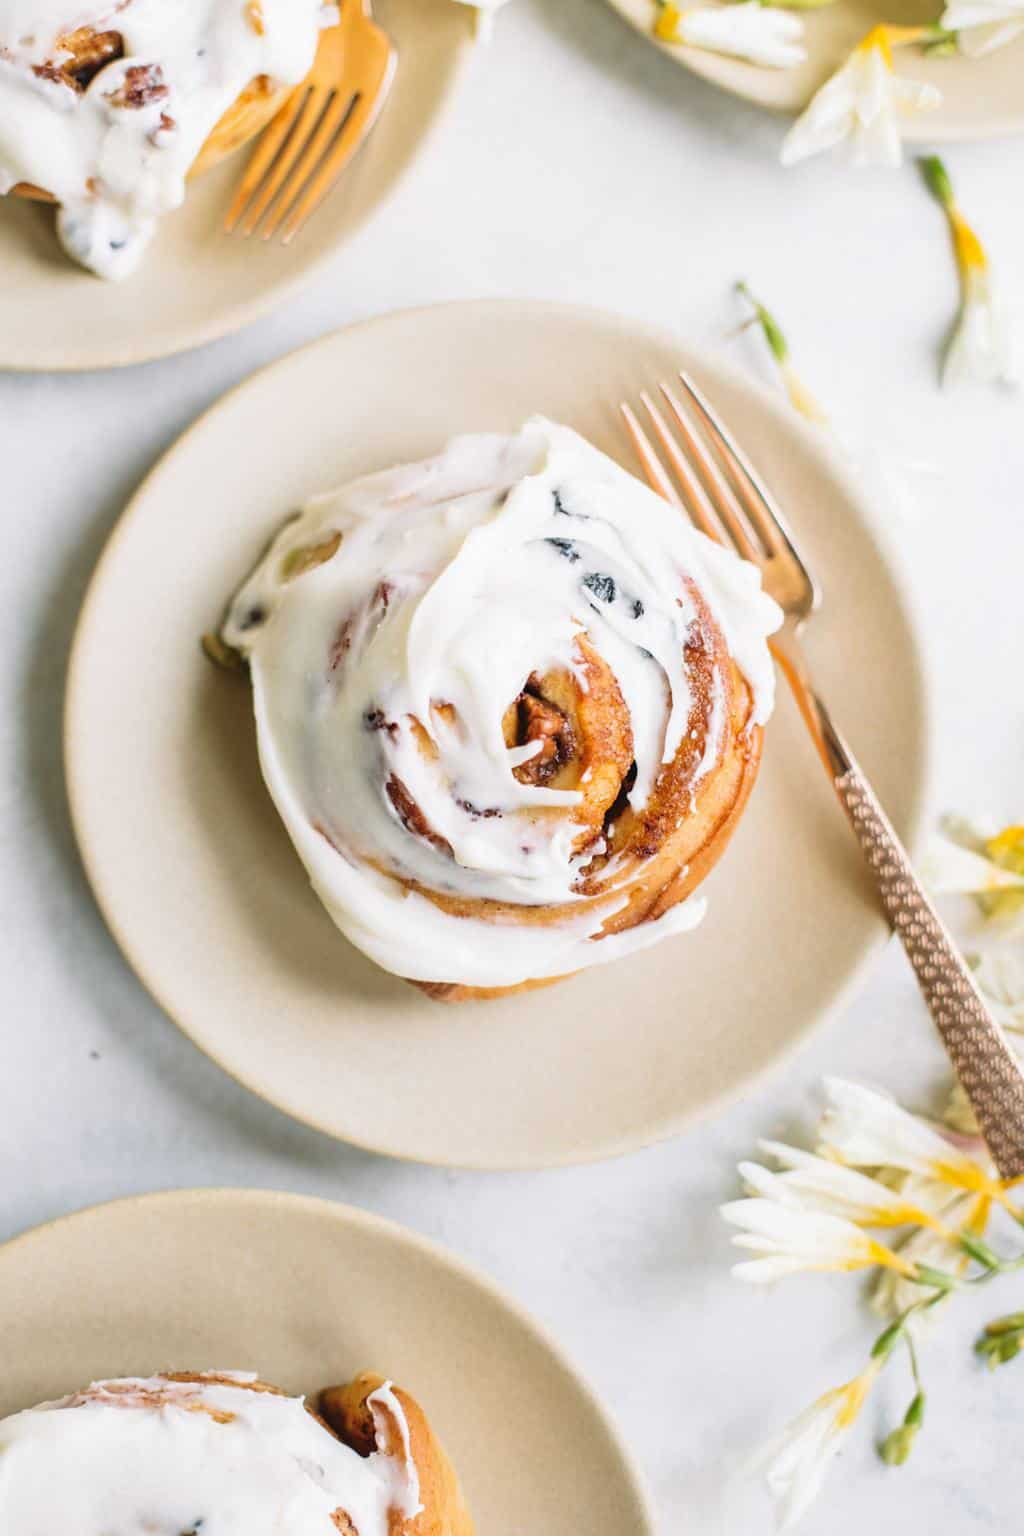 carrot cake cinnamon roll with cream cheese icing on beige plate with gold fork and flowers